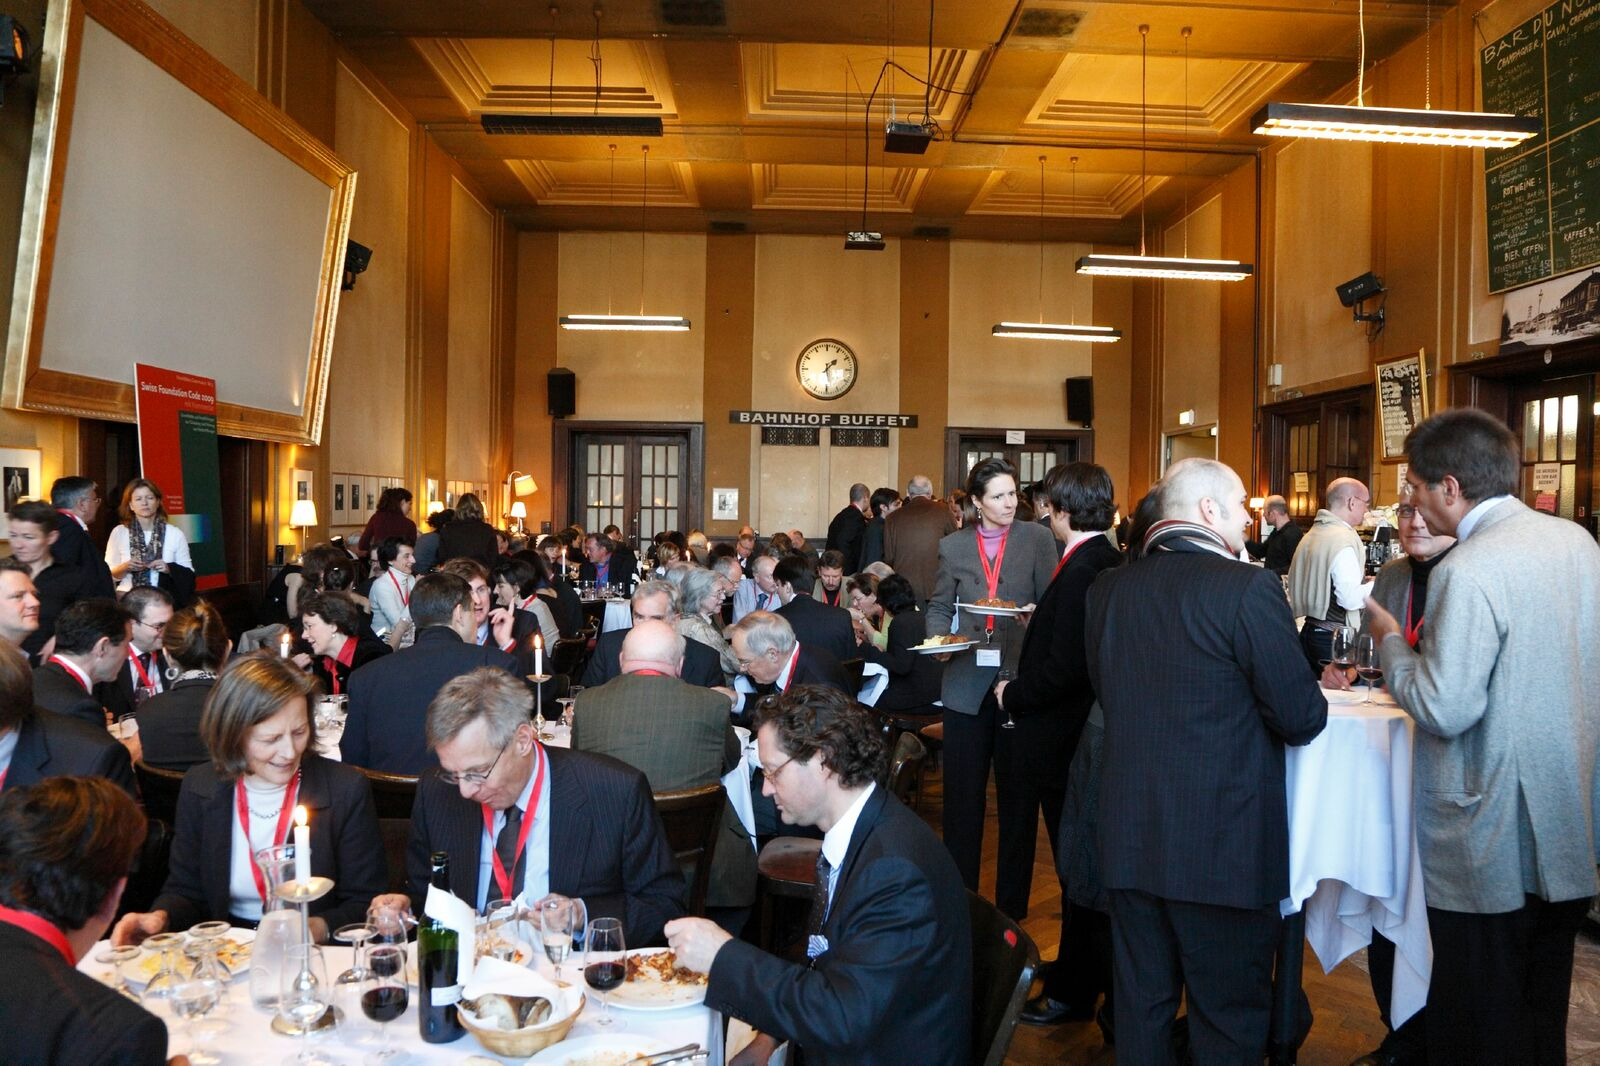 SwissFoundations organizes roundtables on relevant issues where members can network and learn from each other.